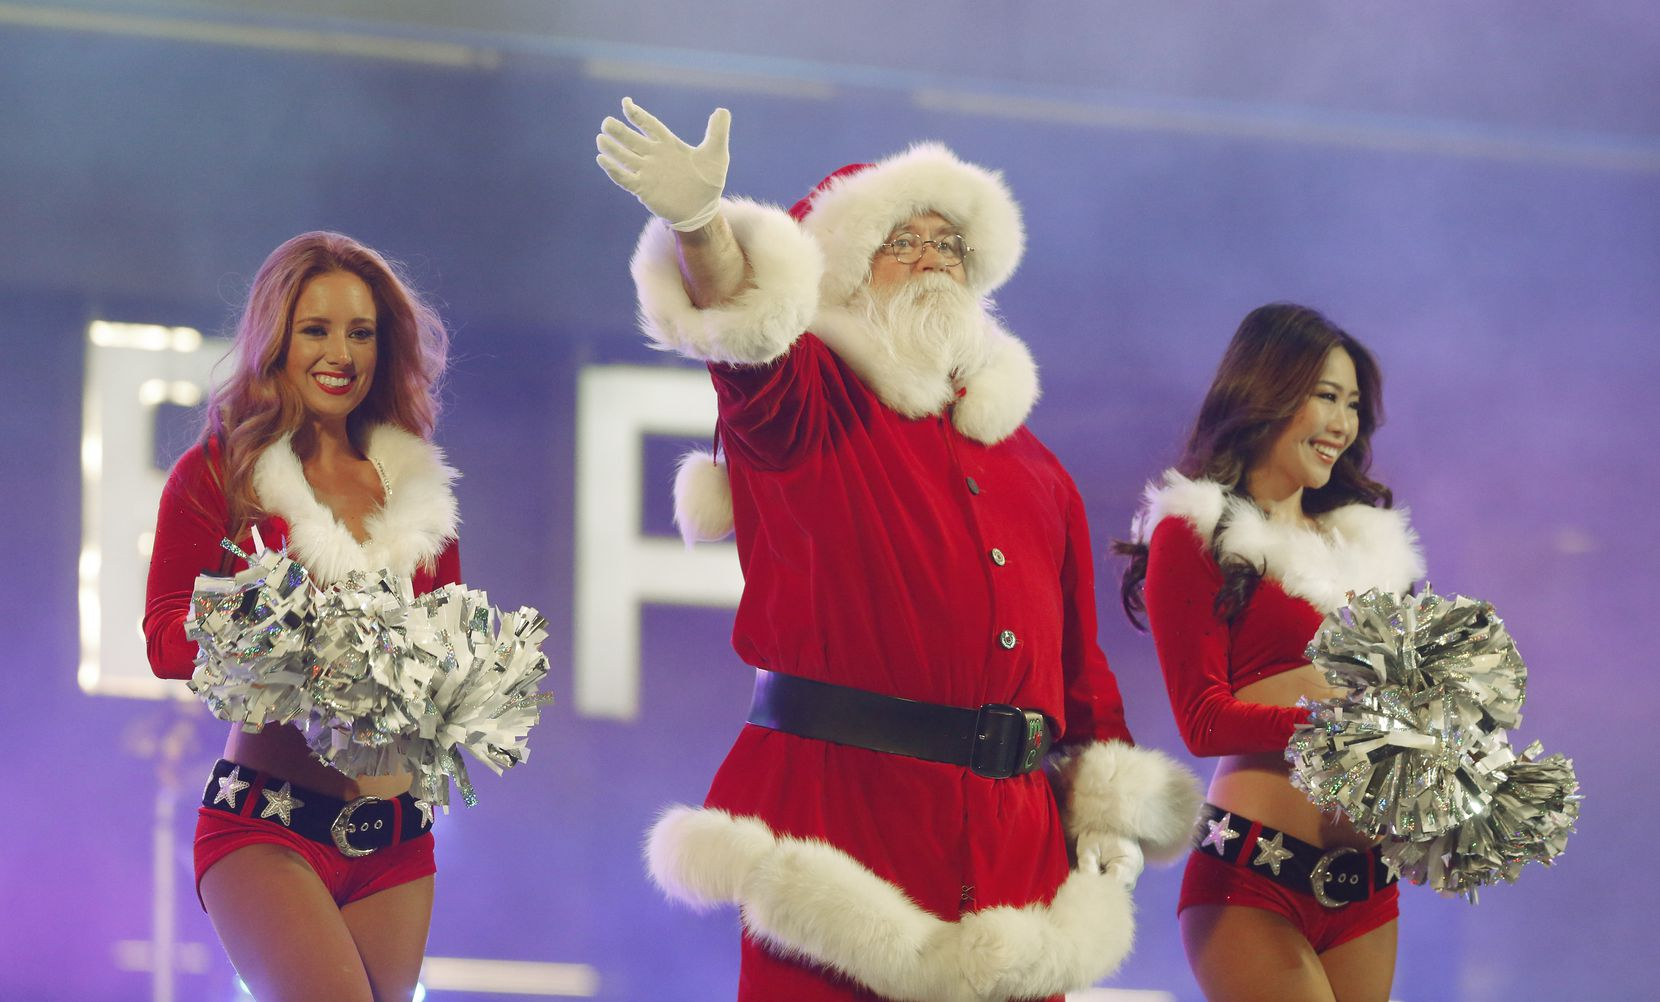 Santa Claus waves to the crowd during the Dallas Cowboys celebration of Christmas at The Star in Frisco.